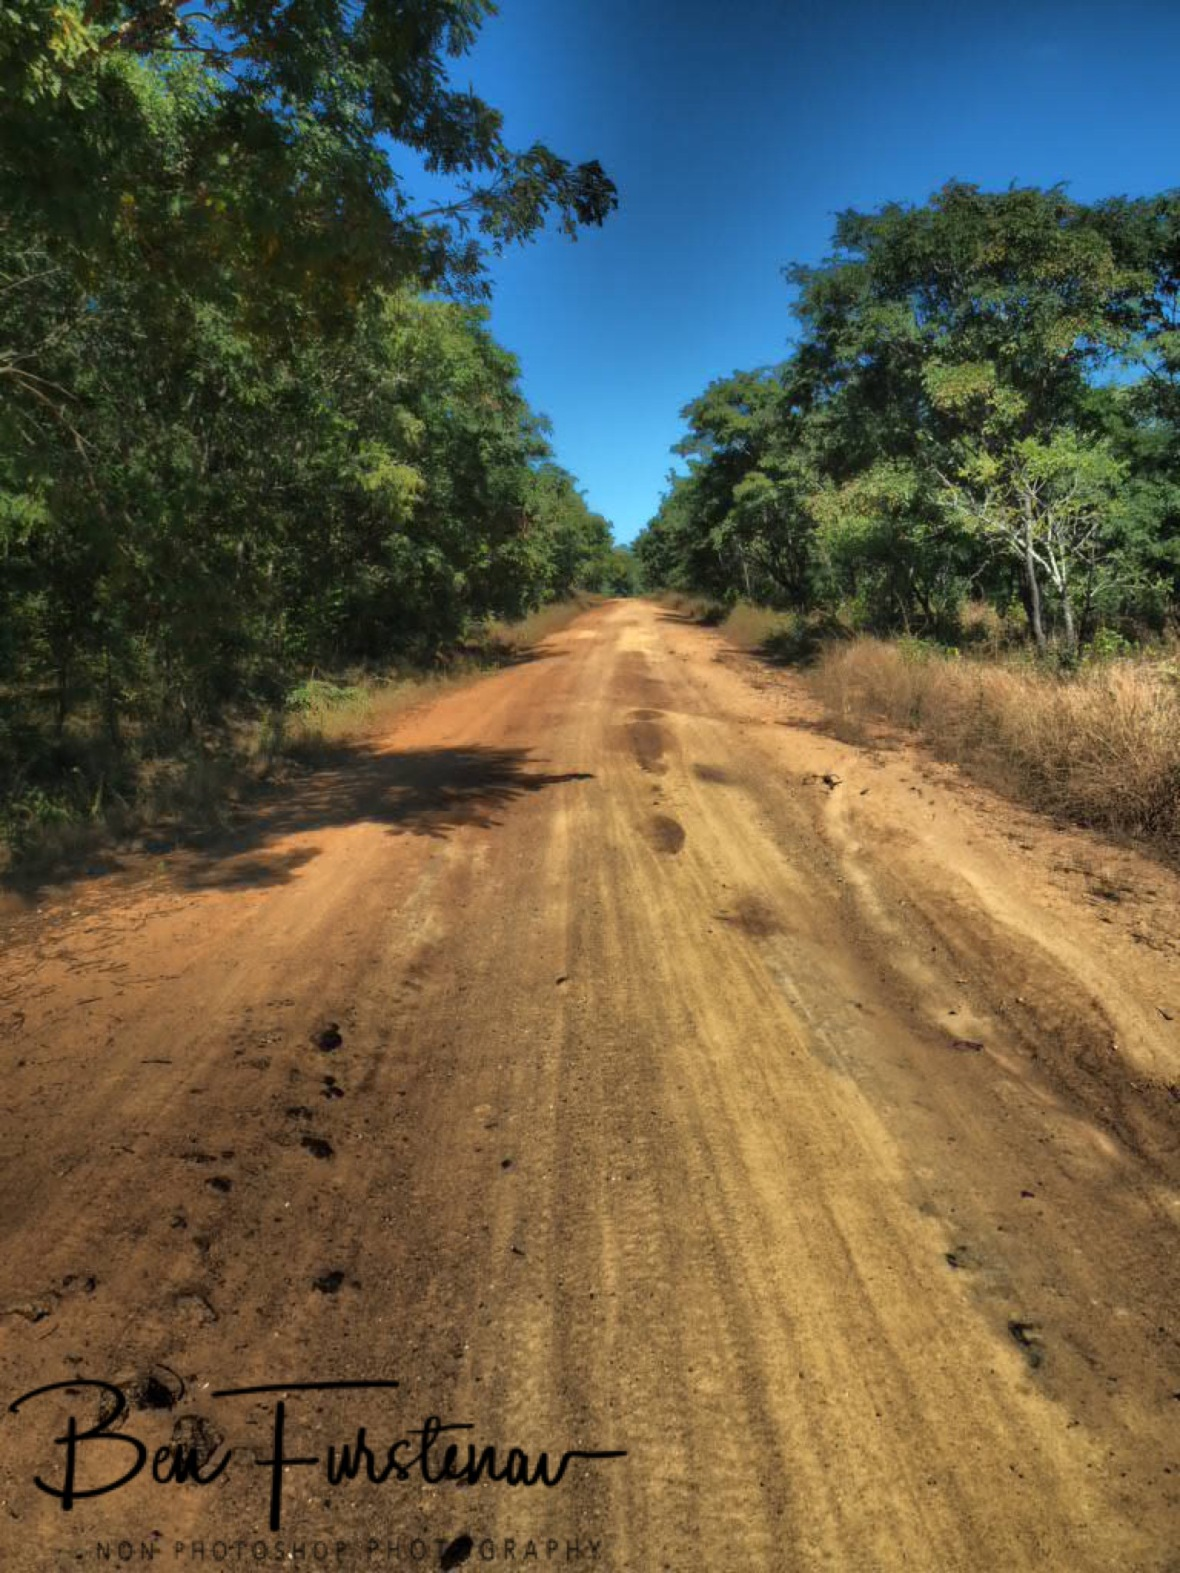 Extremely dusty dirt tracks leading to the Chimanimani Mountains, Mozambique